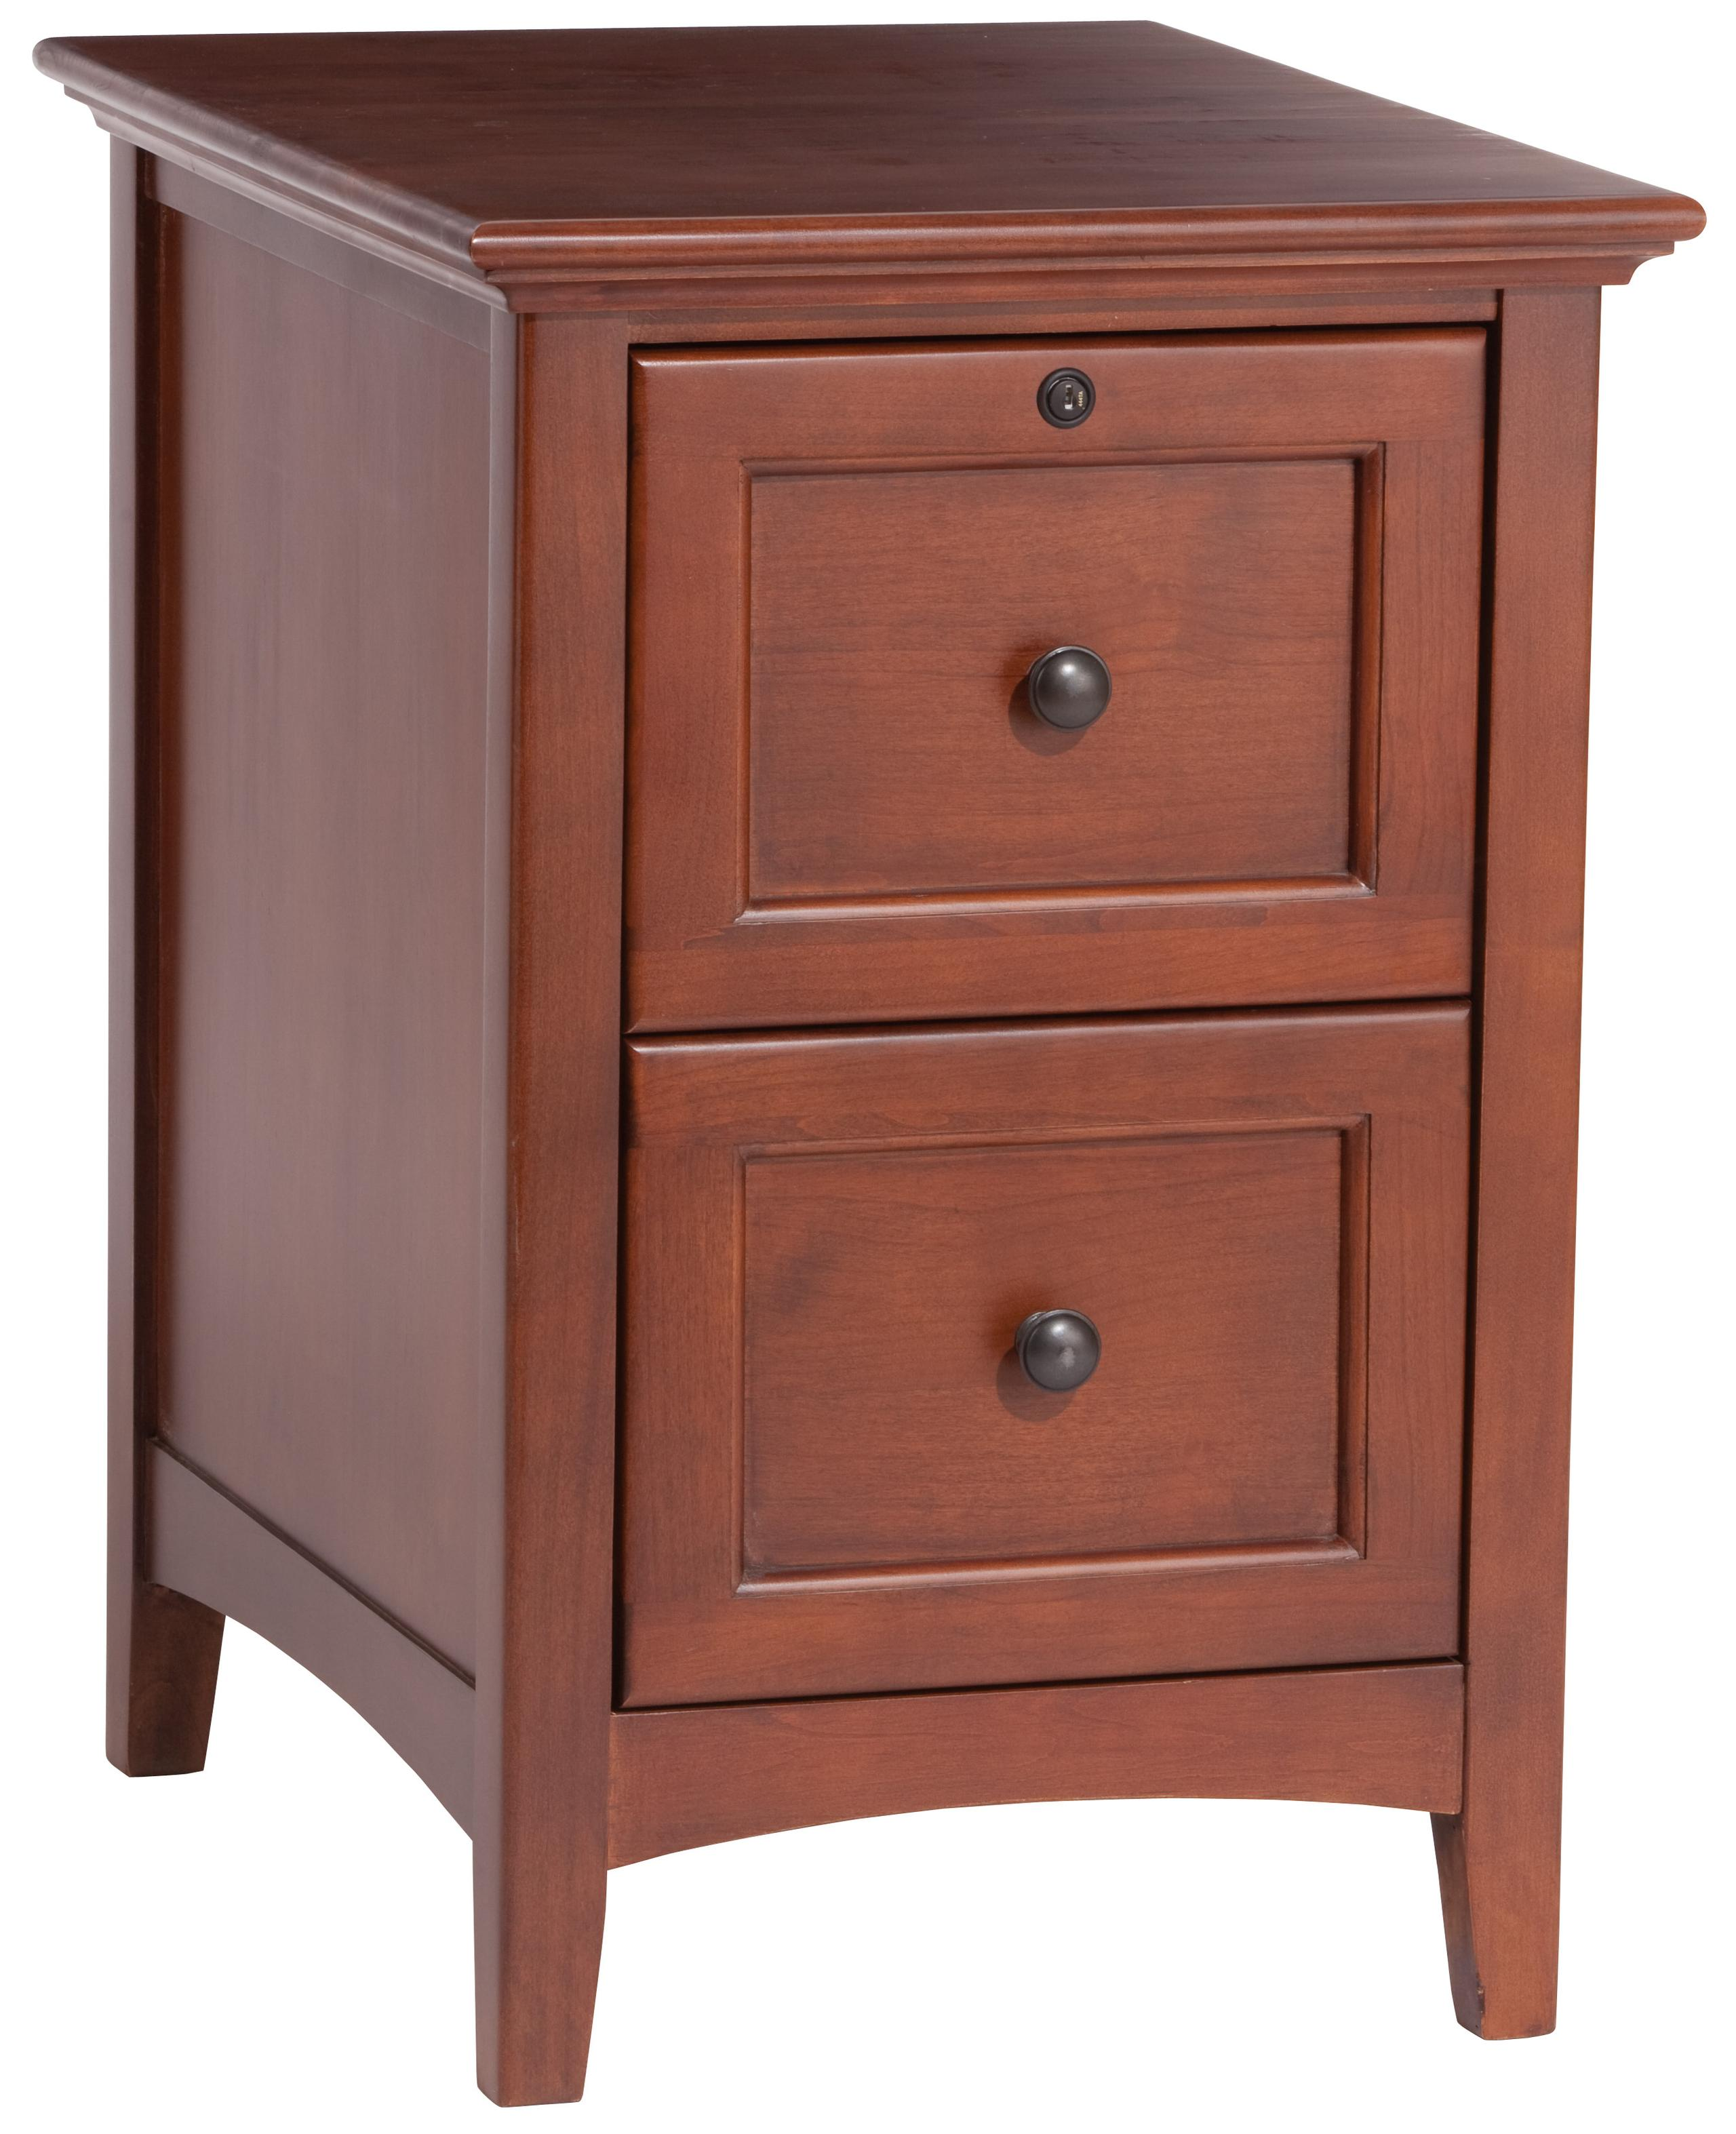 Whittier WoodGac Mckenzie File Cabinet